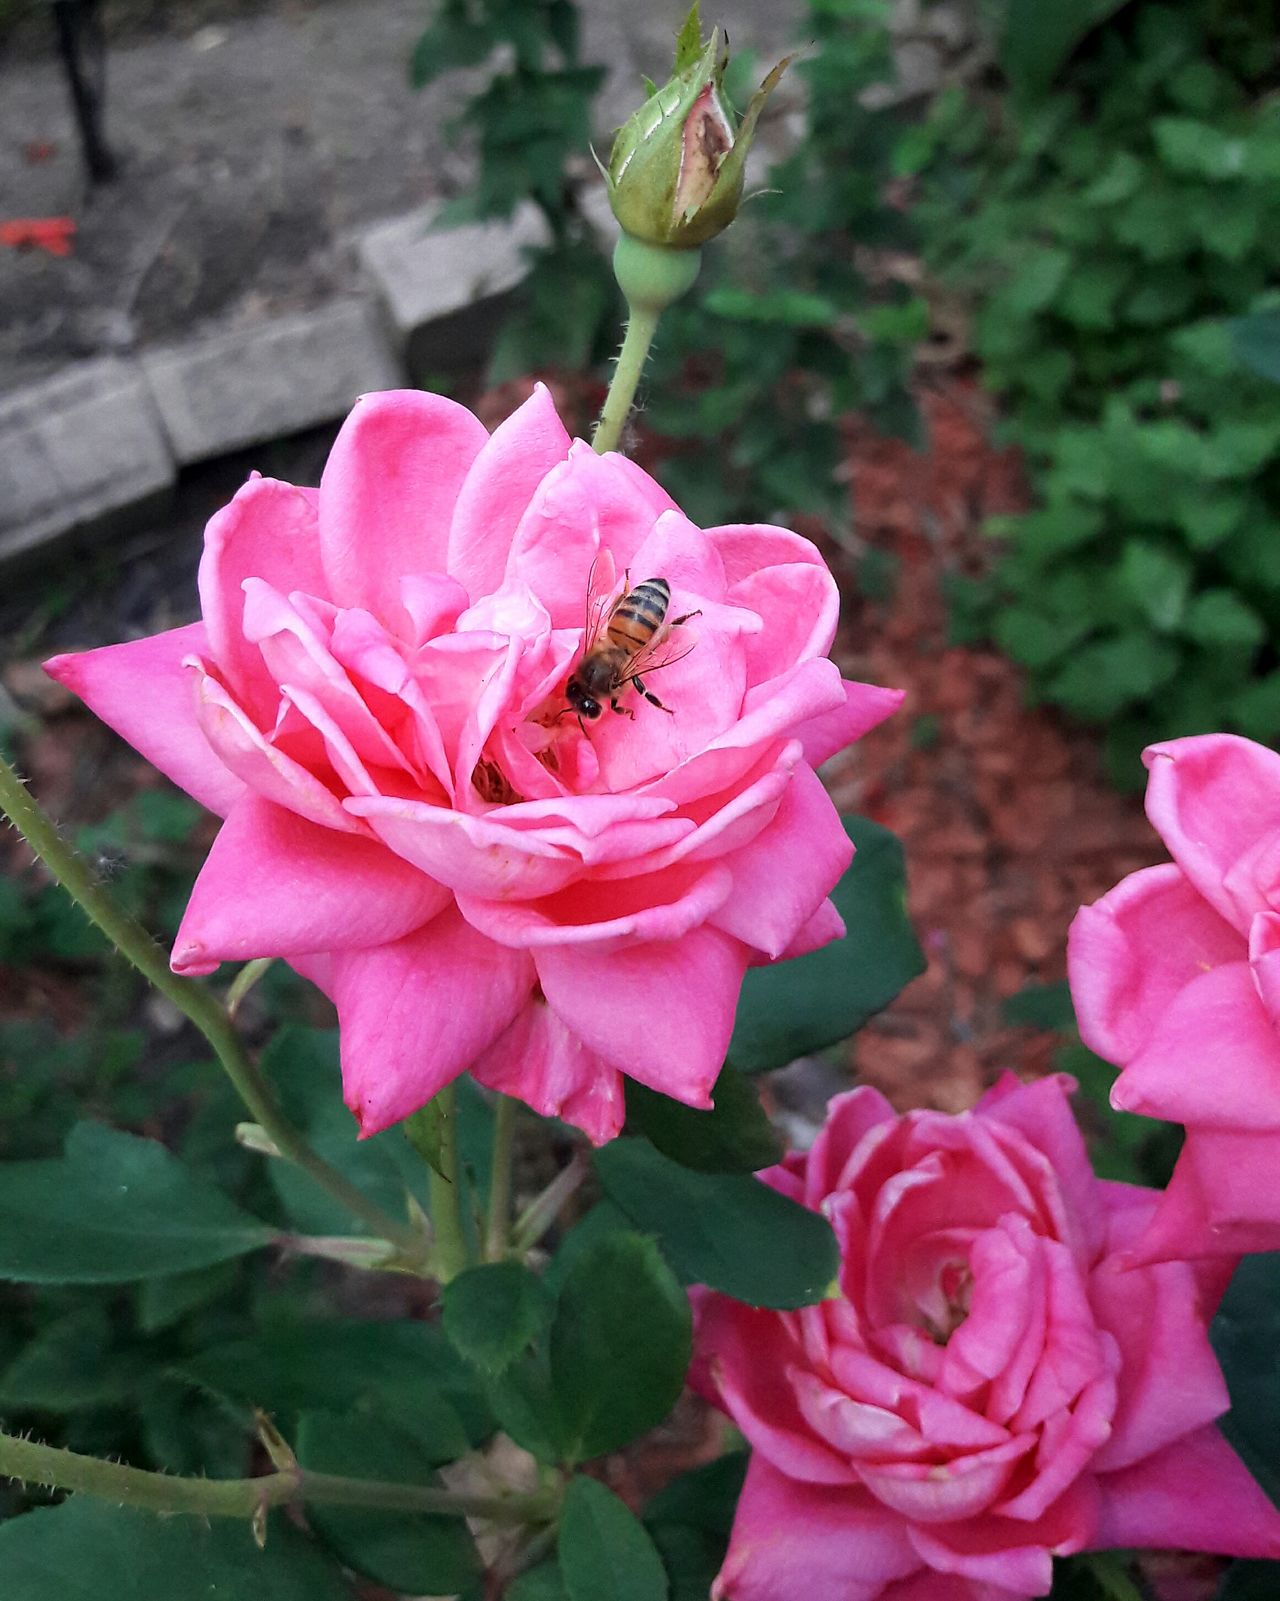 Flower Pink Color Petal Plant Nature Fragility One Animal Insect Beauty In Nature No People Growth Flower Head Outdoors Close-up Day Animal Themes Freshness Animals In The Wild Animal Wildlife HoneyBee Popular Photos EyeEm Nature Lover Roses In My Neighborhood